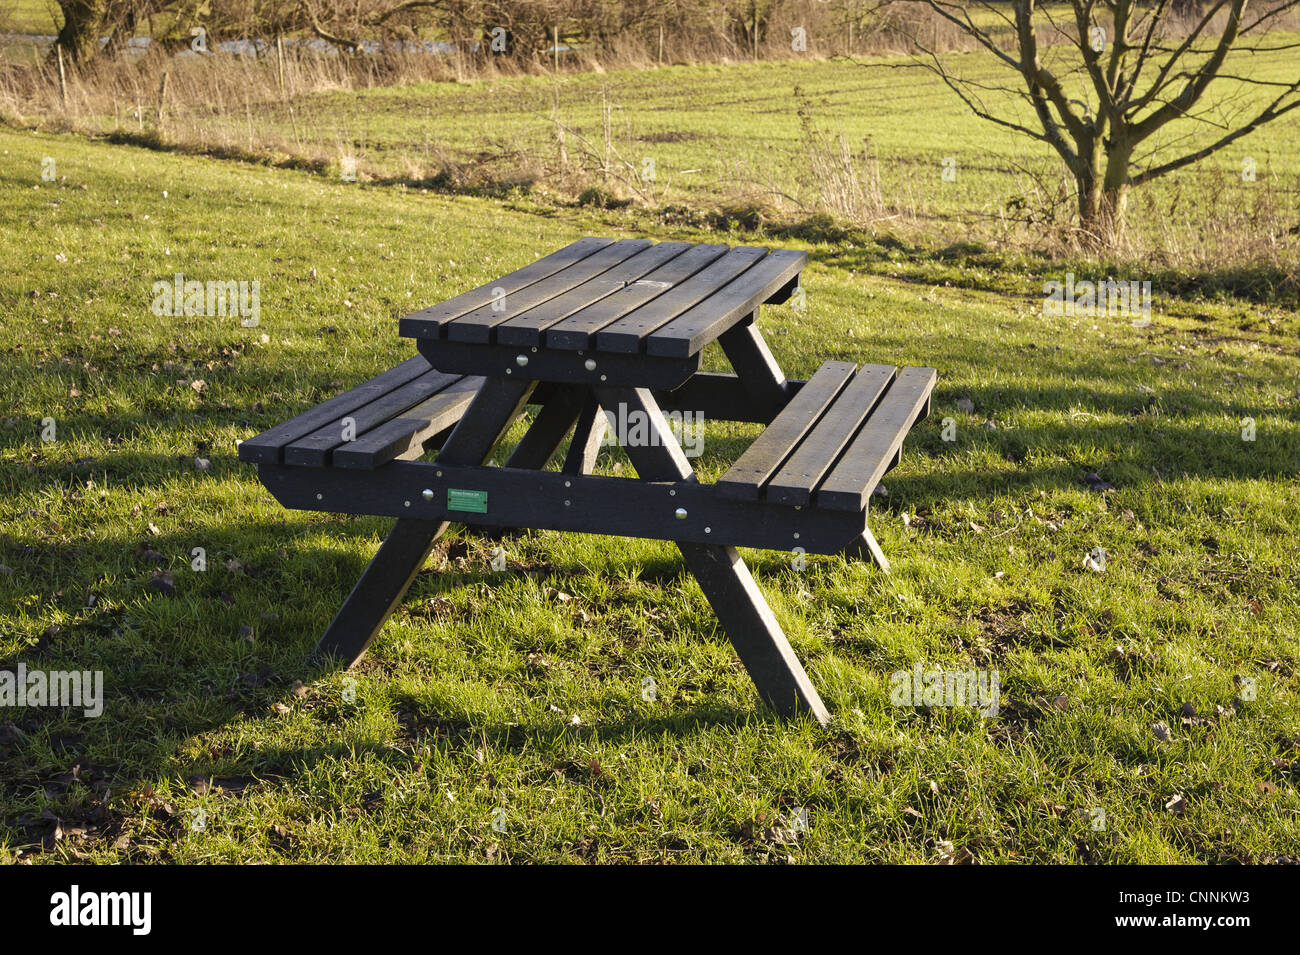 Outdoor Plastic Furniture Made From Recycled Plastic Bottles Stock Photo Royalty Free Image